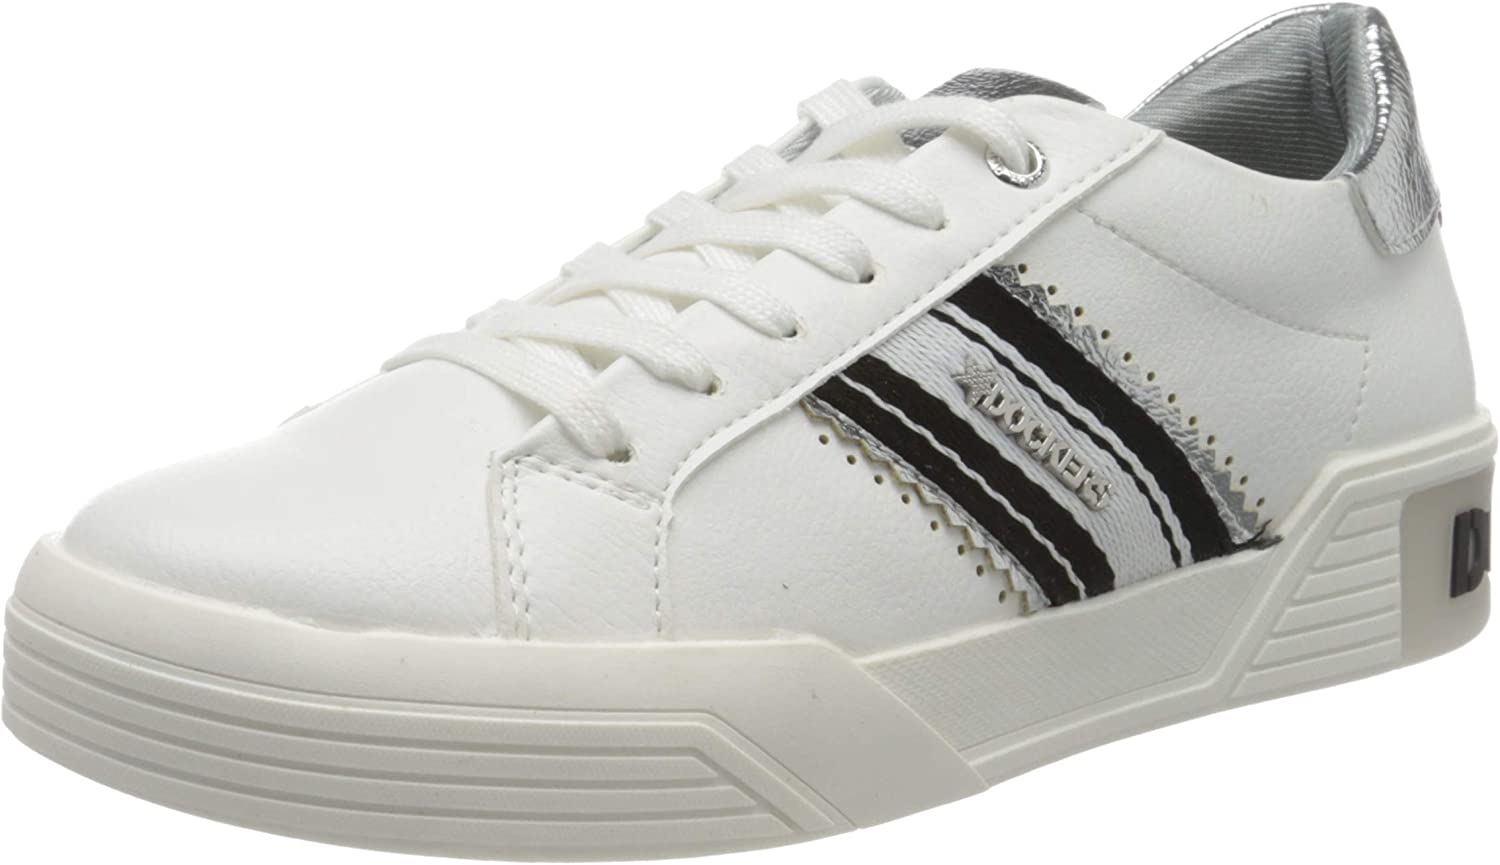 Dockers by Gerli Sneakers We OFFer at cheap prices Popular product Women's Low-Top